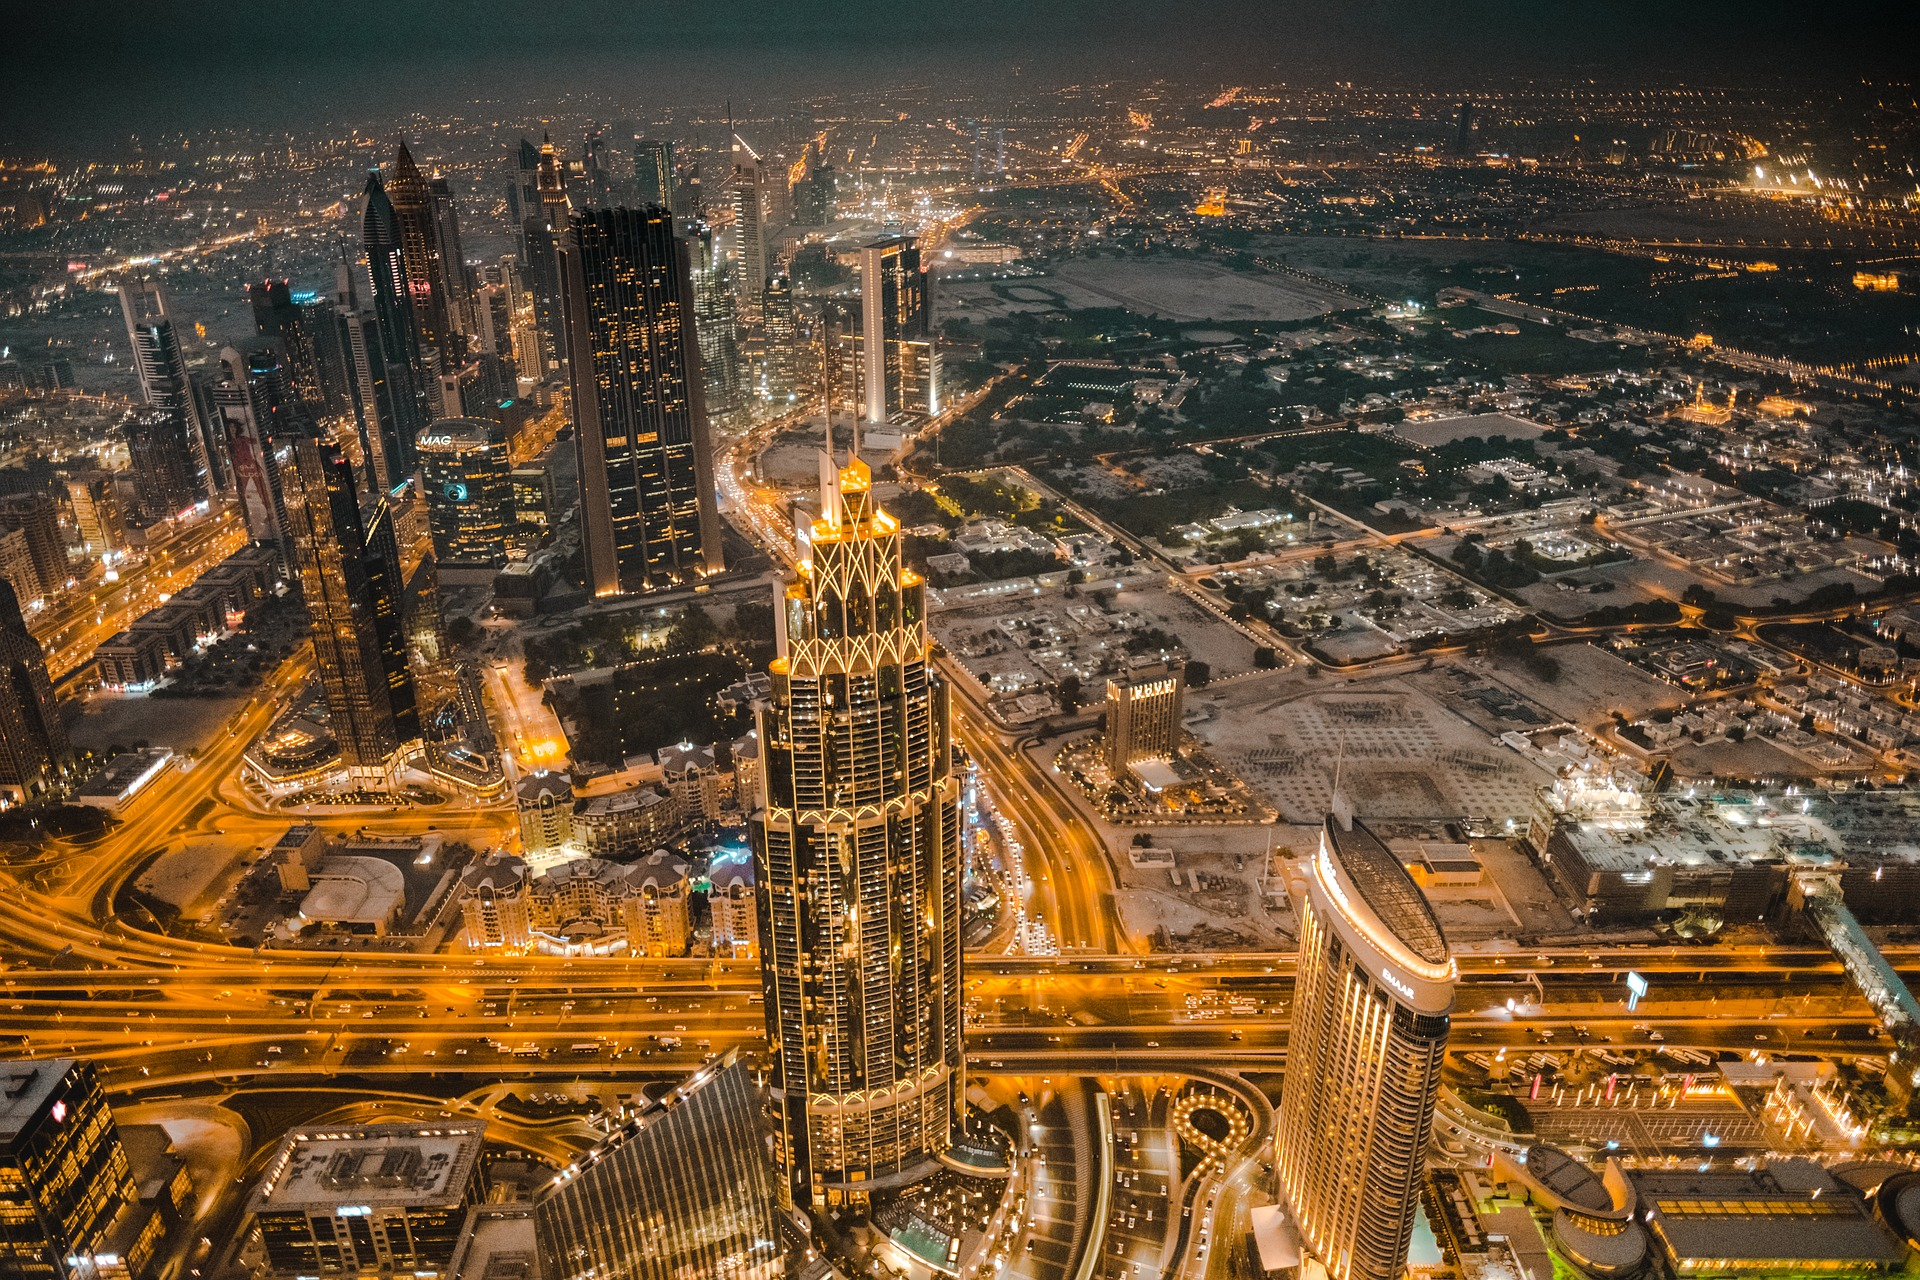 Dubai Is Likely To Take Advantage Of Expanding Crypto Asset Market, Says Bittrex Global CEO